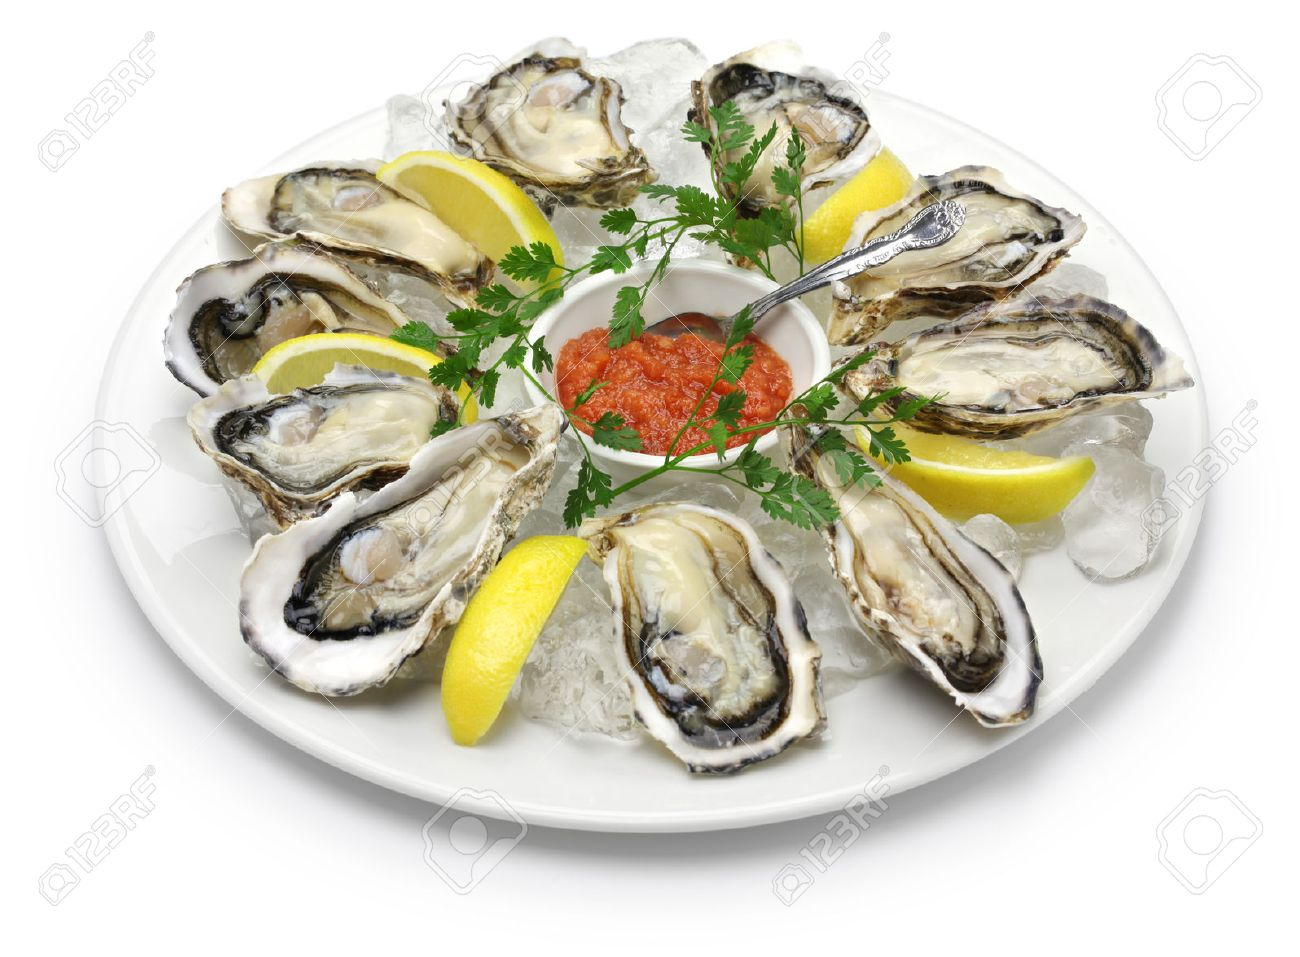 fresh oysters plate isolated on white background Stock Photo - 52381934